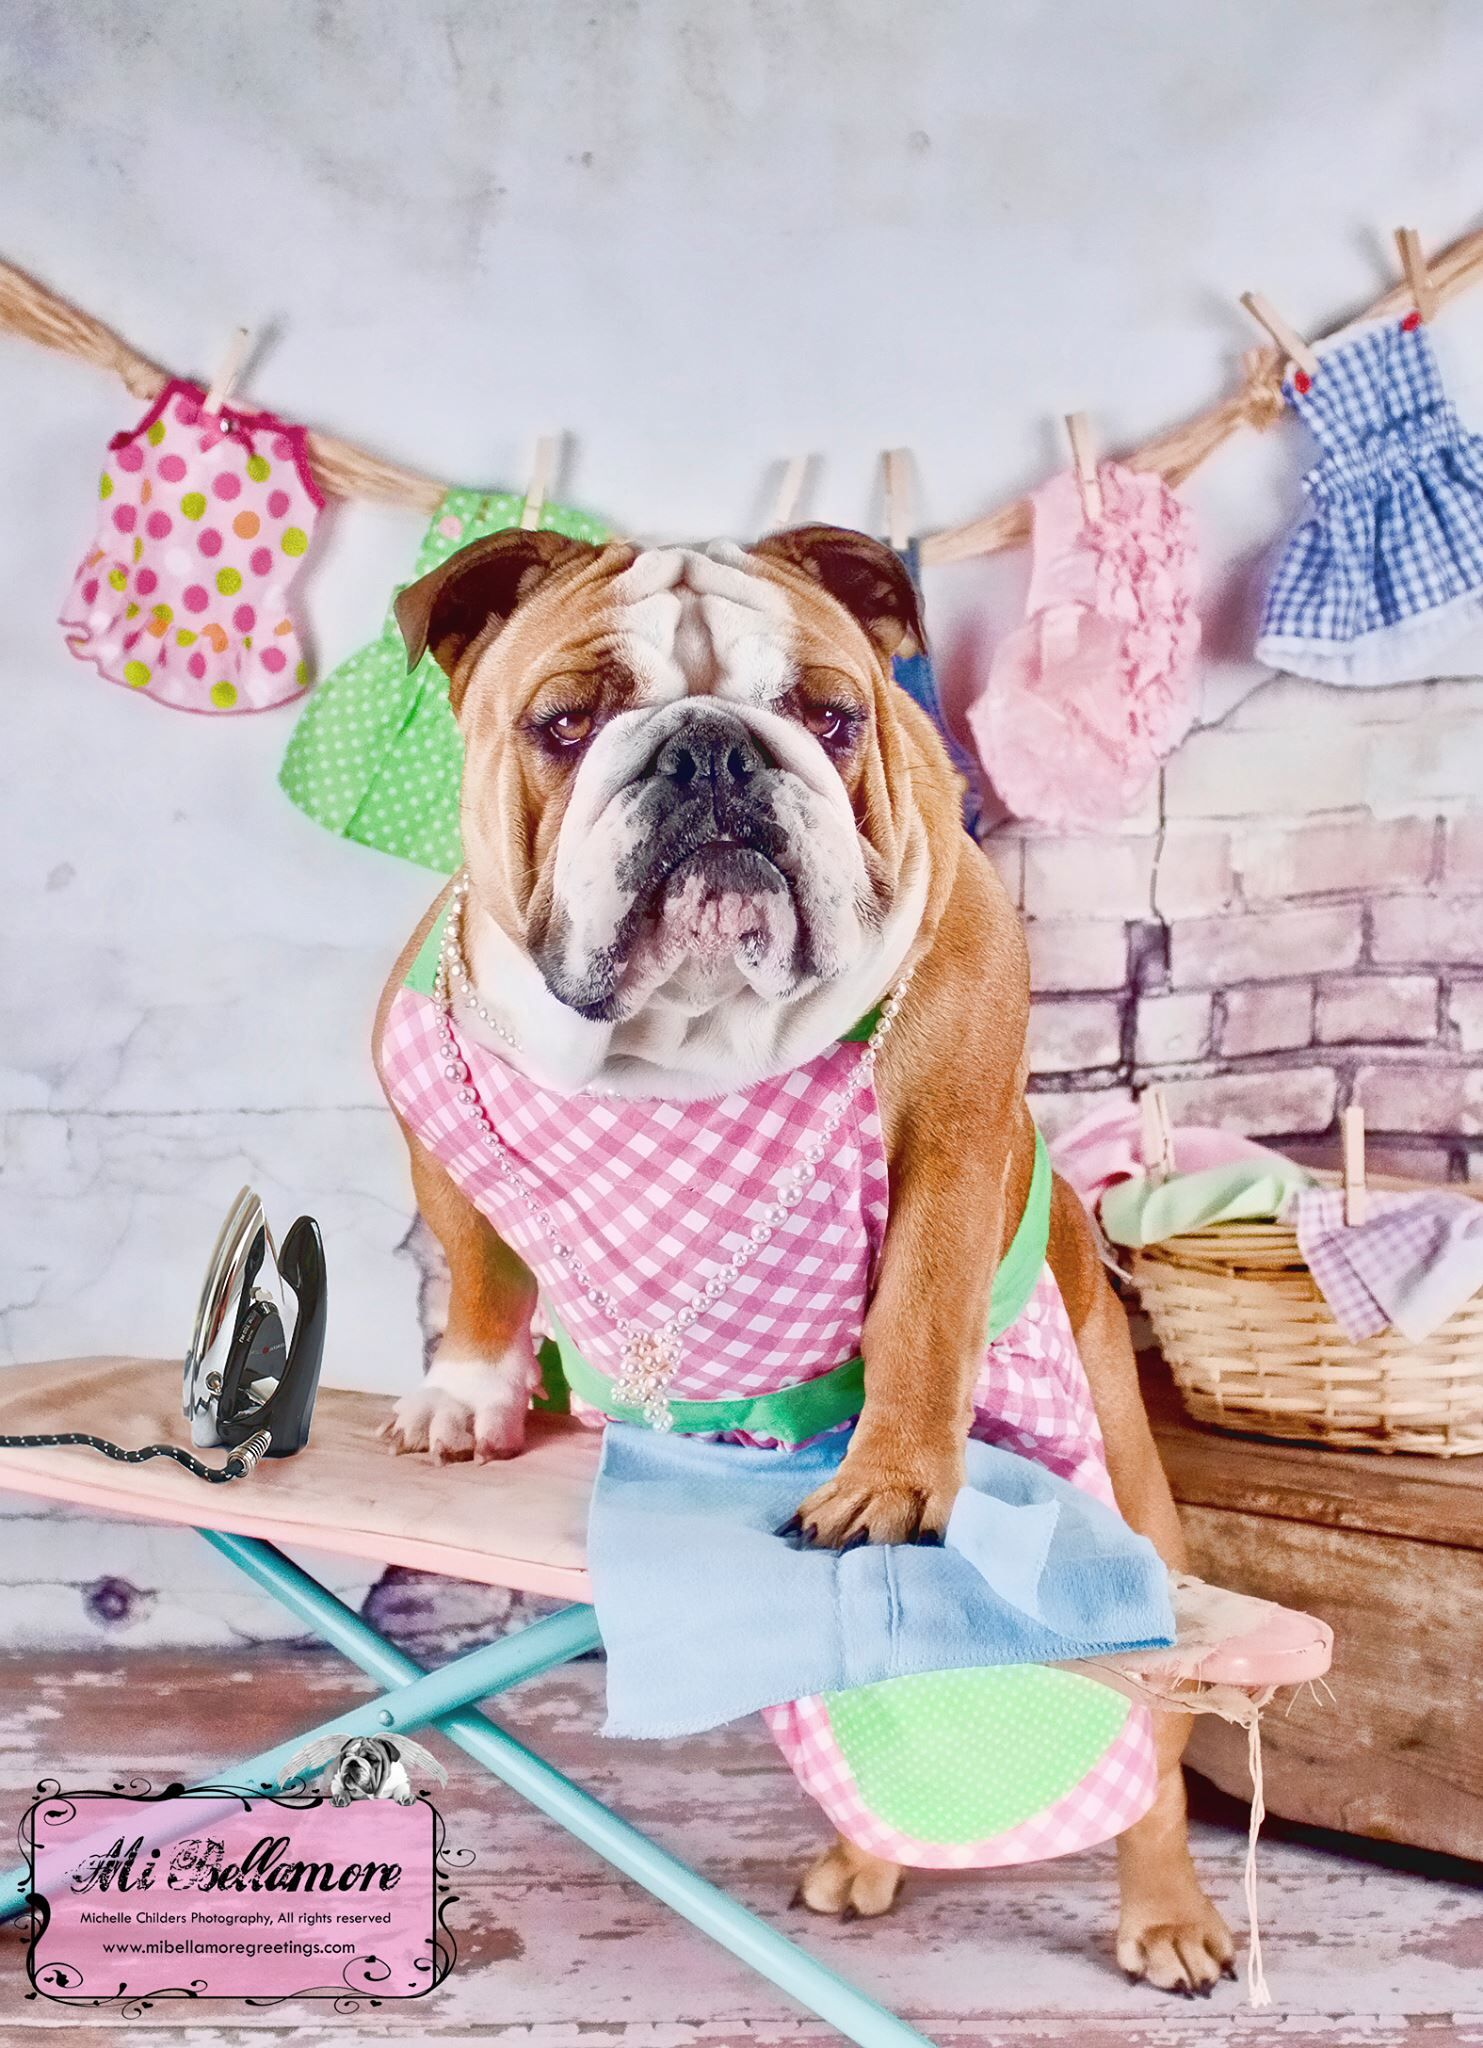 Ironing Bully All Things Bulldog Bulldog Puppies Old English Bulldog Silly Dogs